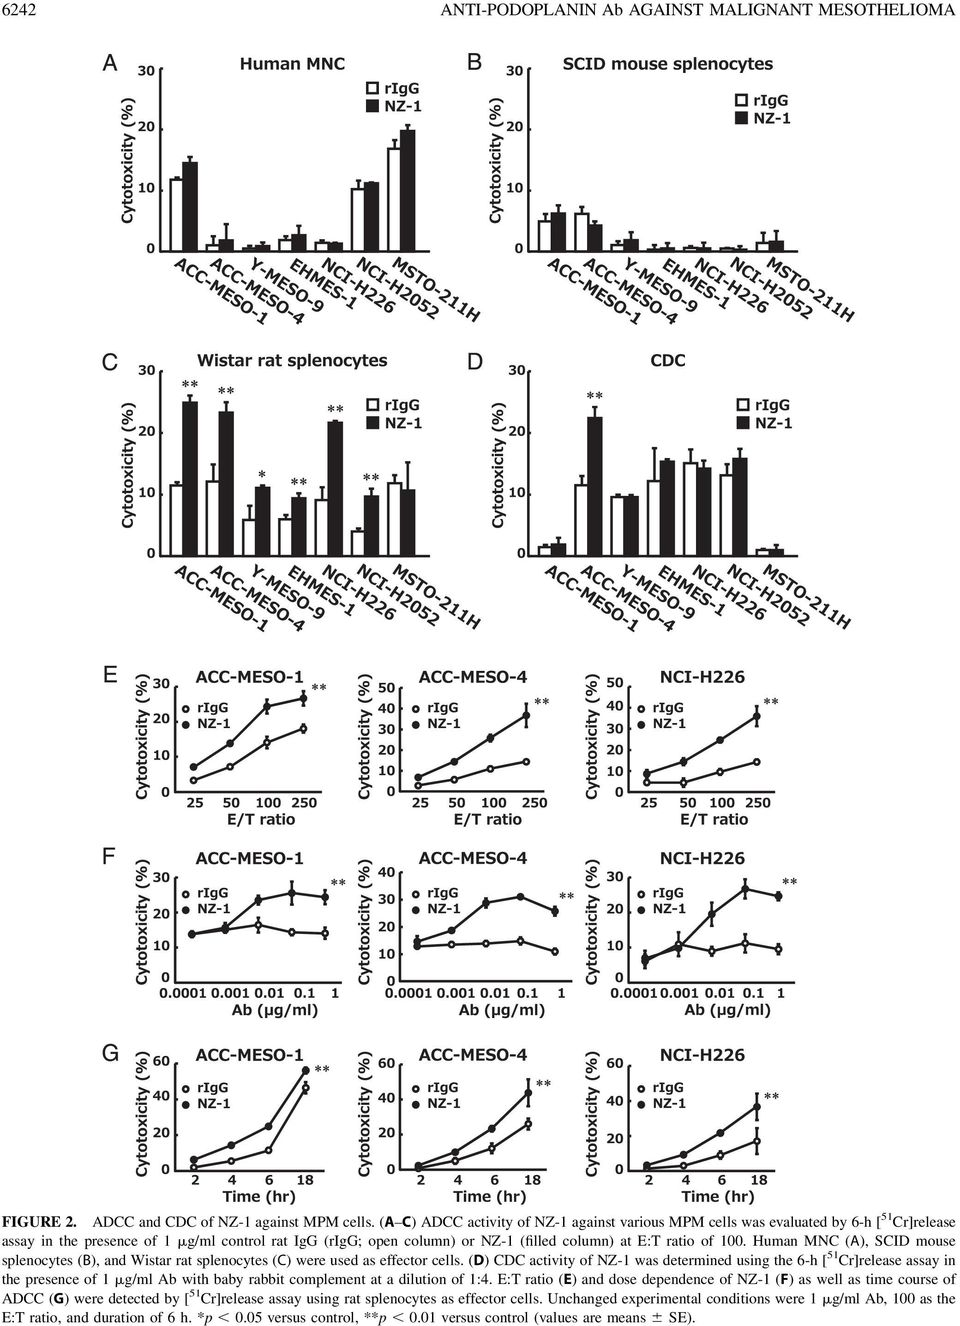 100. Human MNC (A), SCID mouse splenocytes (B), and Wistar rat splenocytes (C) were used as effector cells.